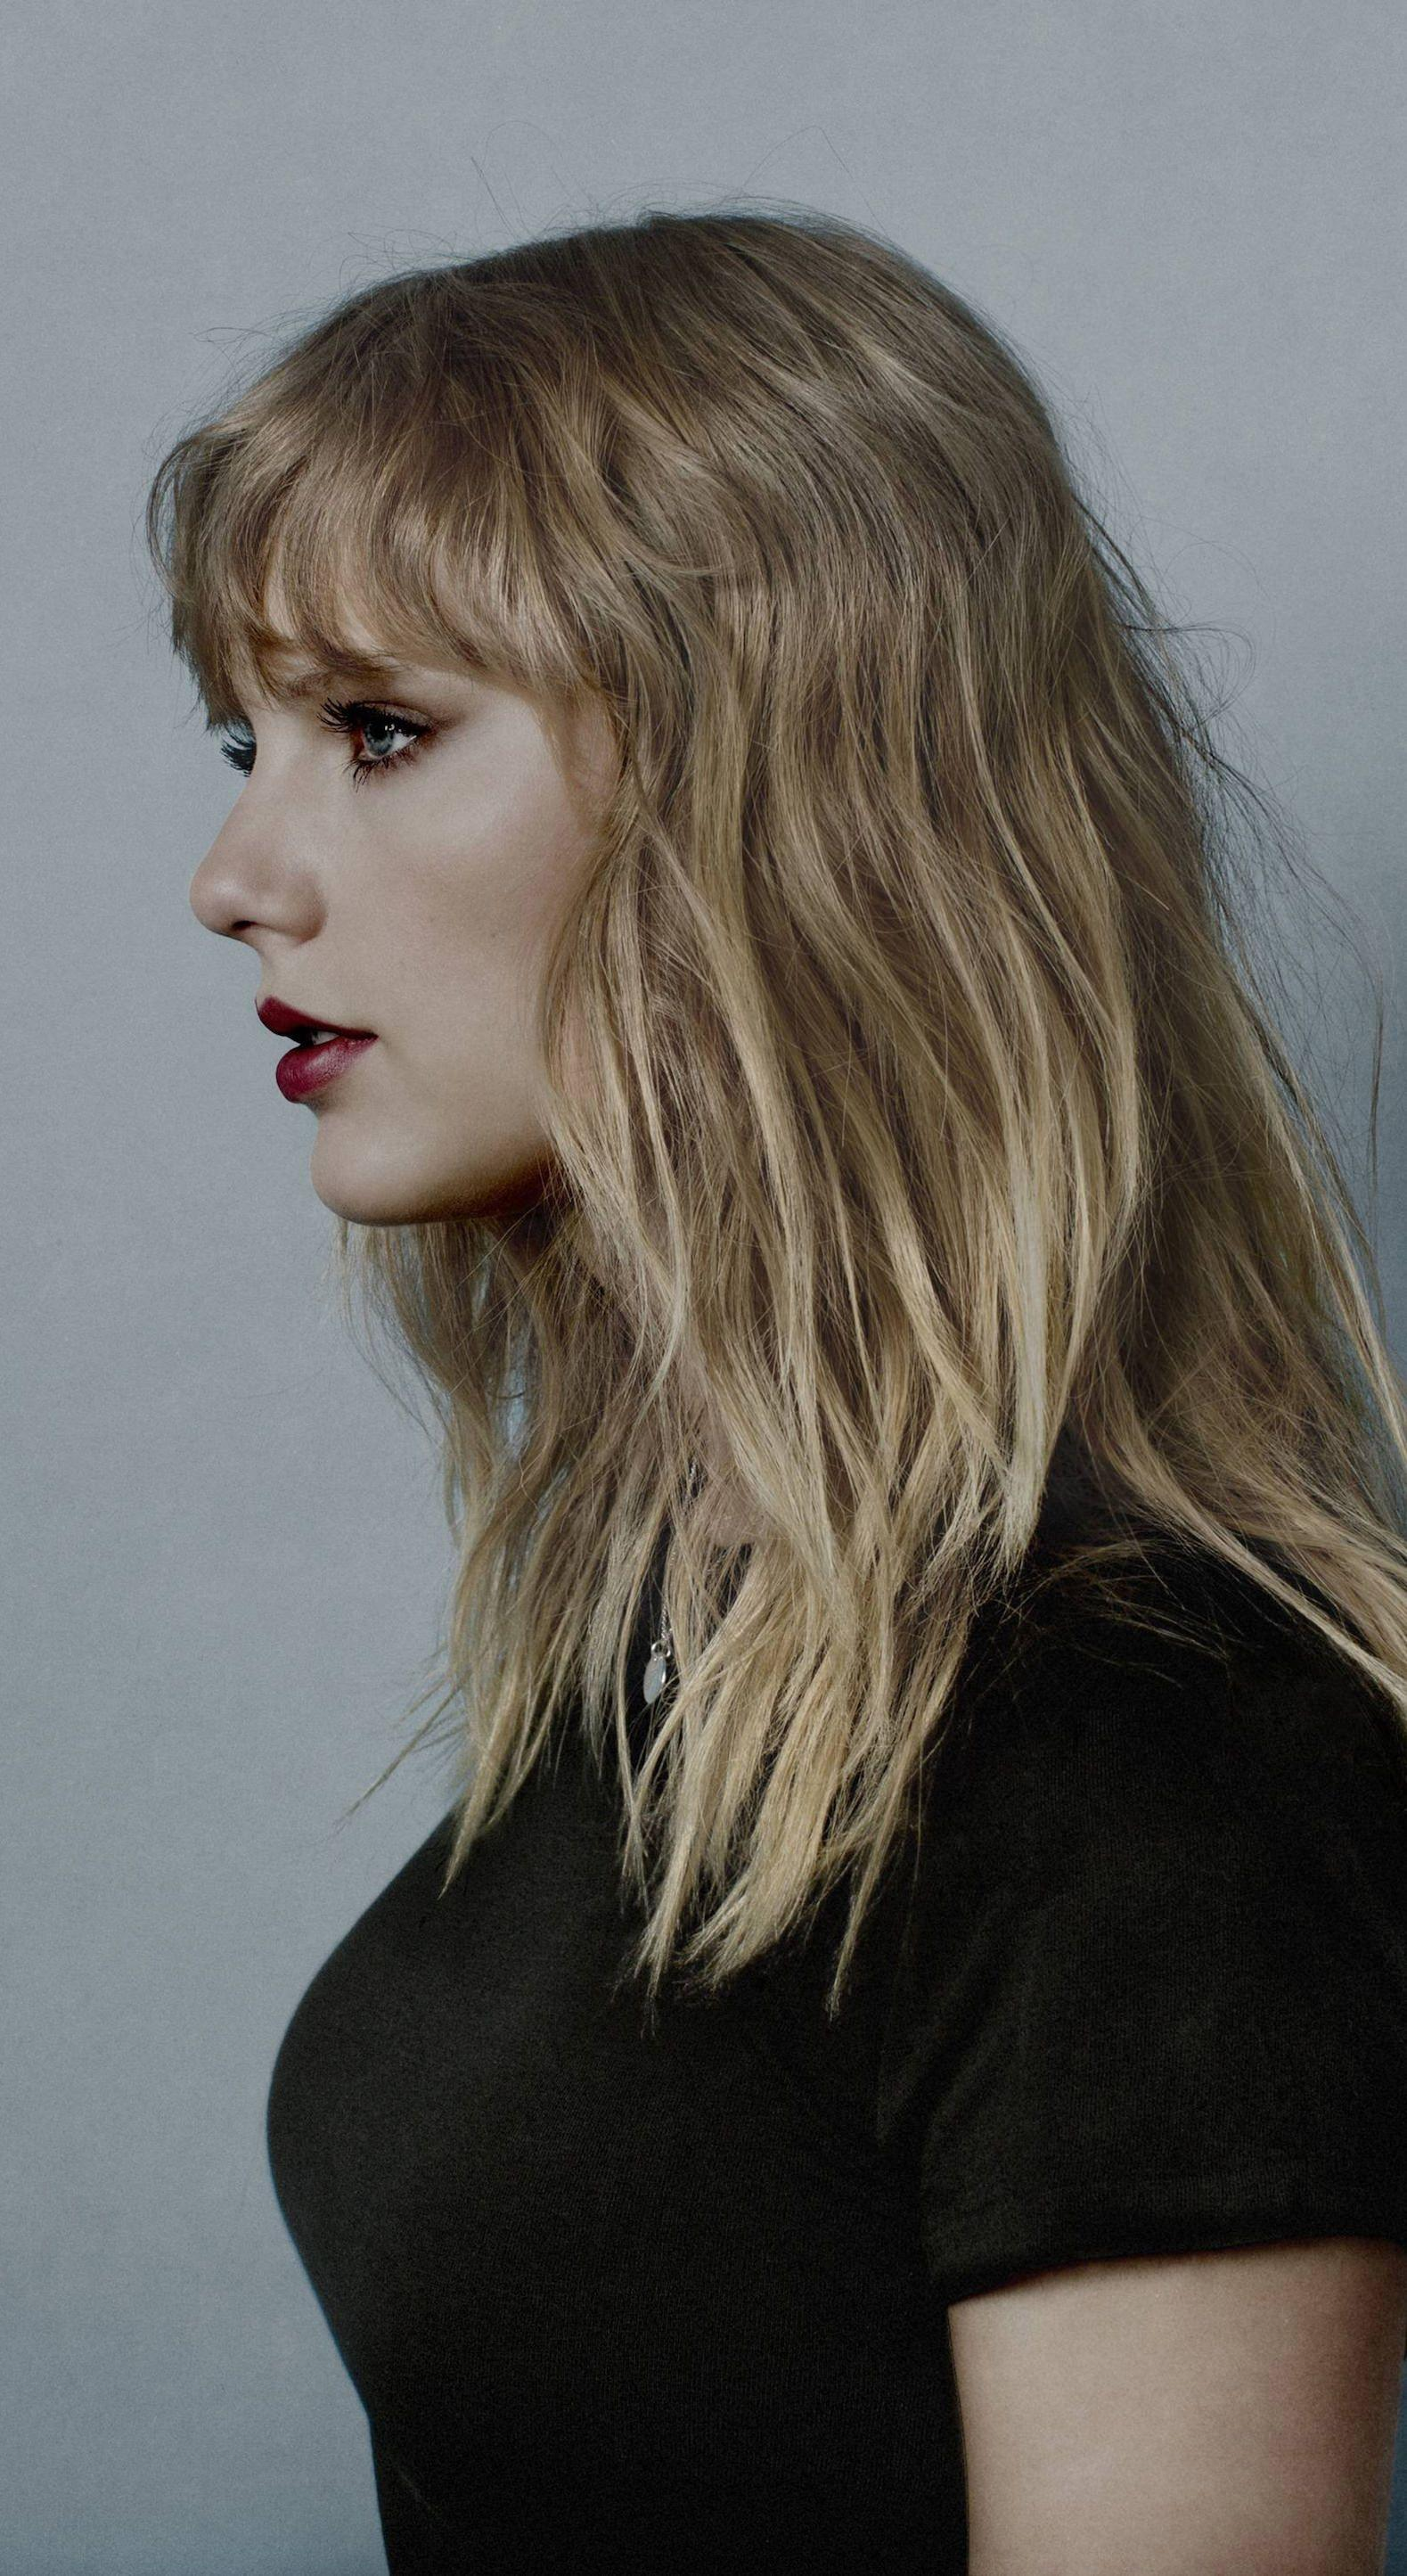 Taylor Swift 2020 Wallpapers - Wallpaper Cave